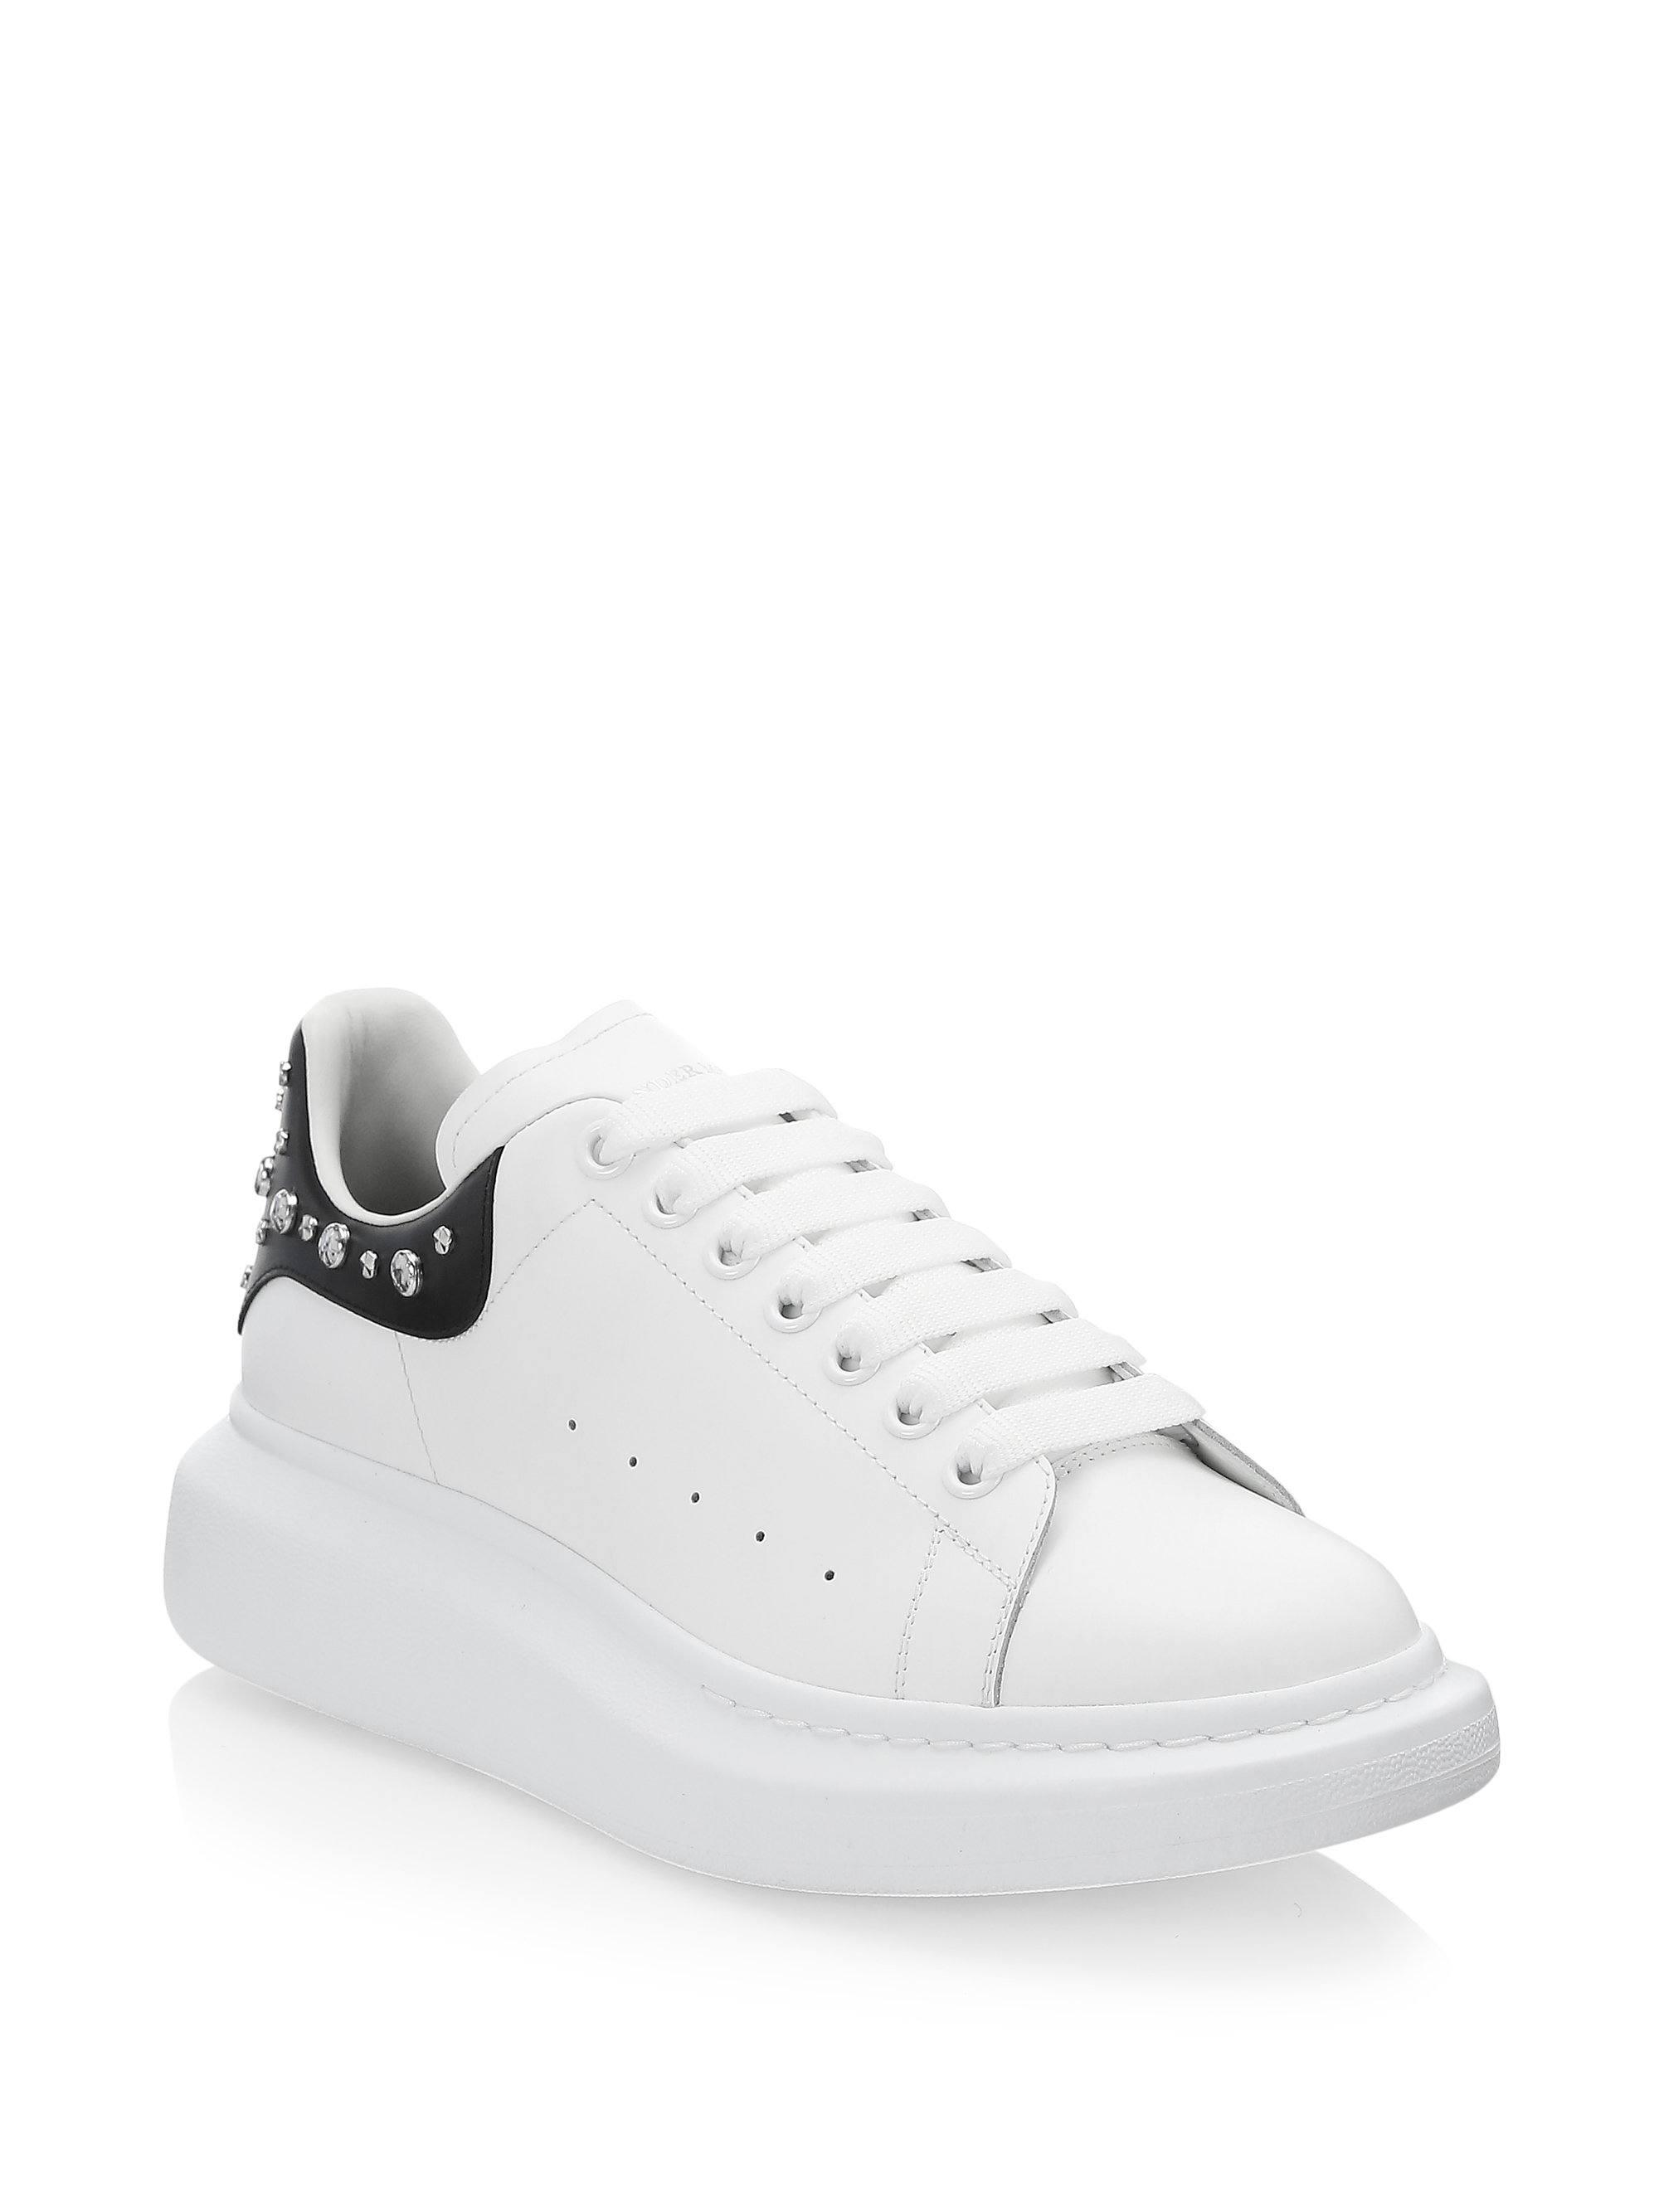 92735d32316c Lyst - Alexander Mcqueen Oversized Studded Leather Sneakers in White ...